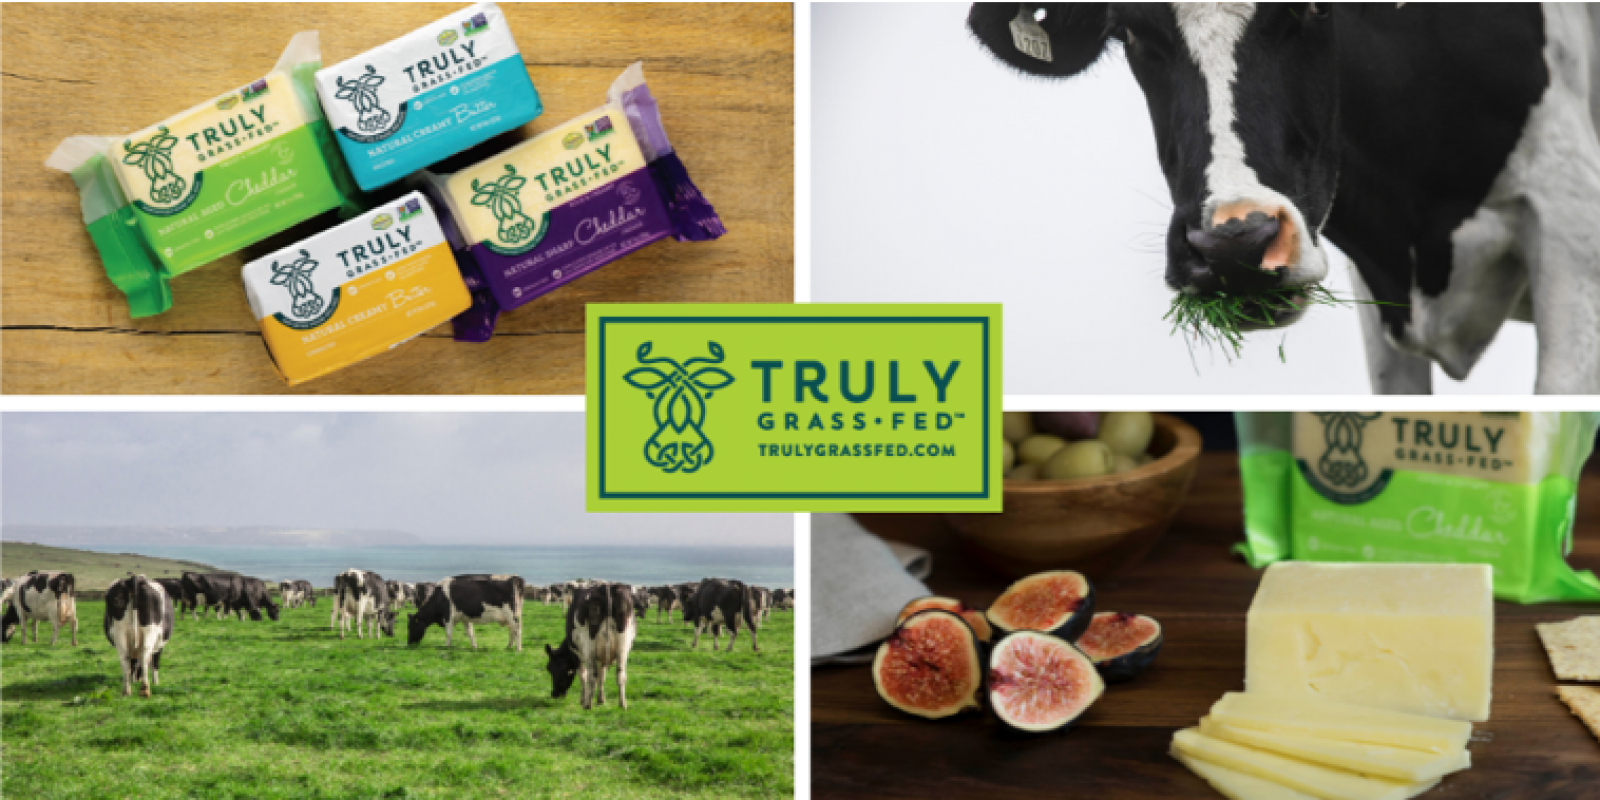 Collage of 4 images featuring Truly Grass Fed imagery. From top left: image of Truly Grass Fed butter and cheese; close-up of cow eating grass; group of cows grazing in a green field; close-up of Truly Grass Fed cheese sitting on a cheese board. In the middle of the collage is the Truly Grass Fed logo.